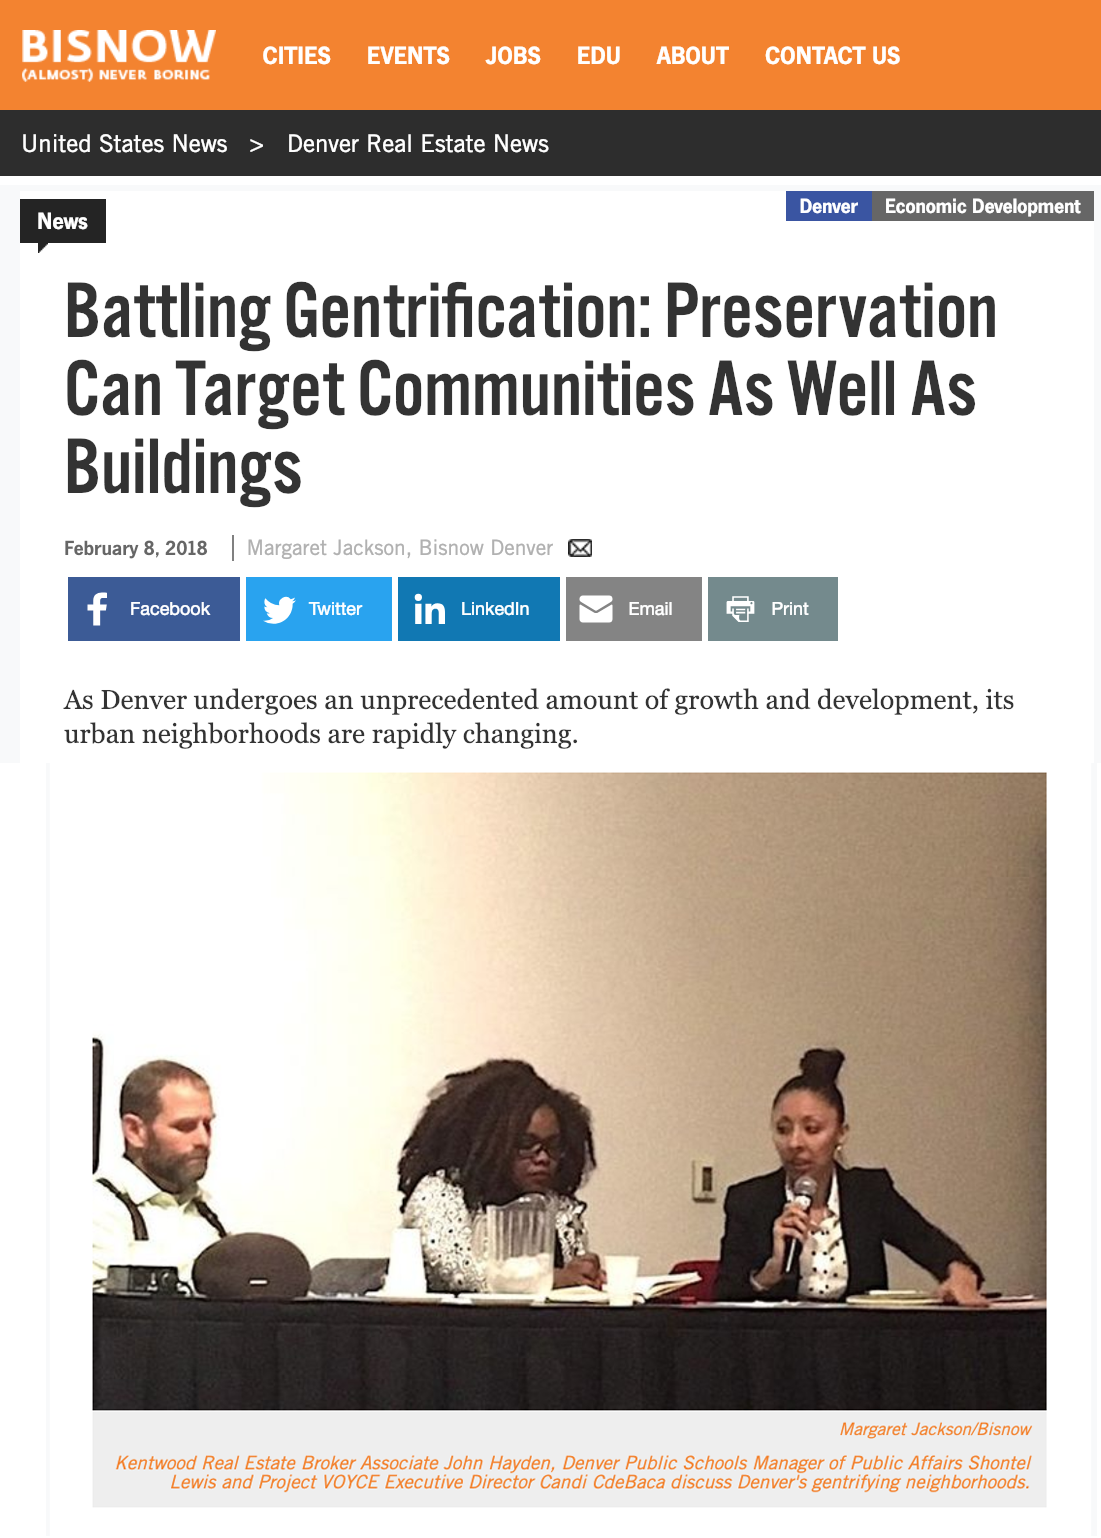 Battling Gentrification: Preservation Can Target Communities As Well As Buildings - As Denver undergoes an unprecedented amount of growth and development, its urban neighborhoods are rapidly changing.